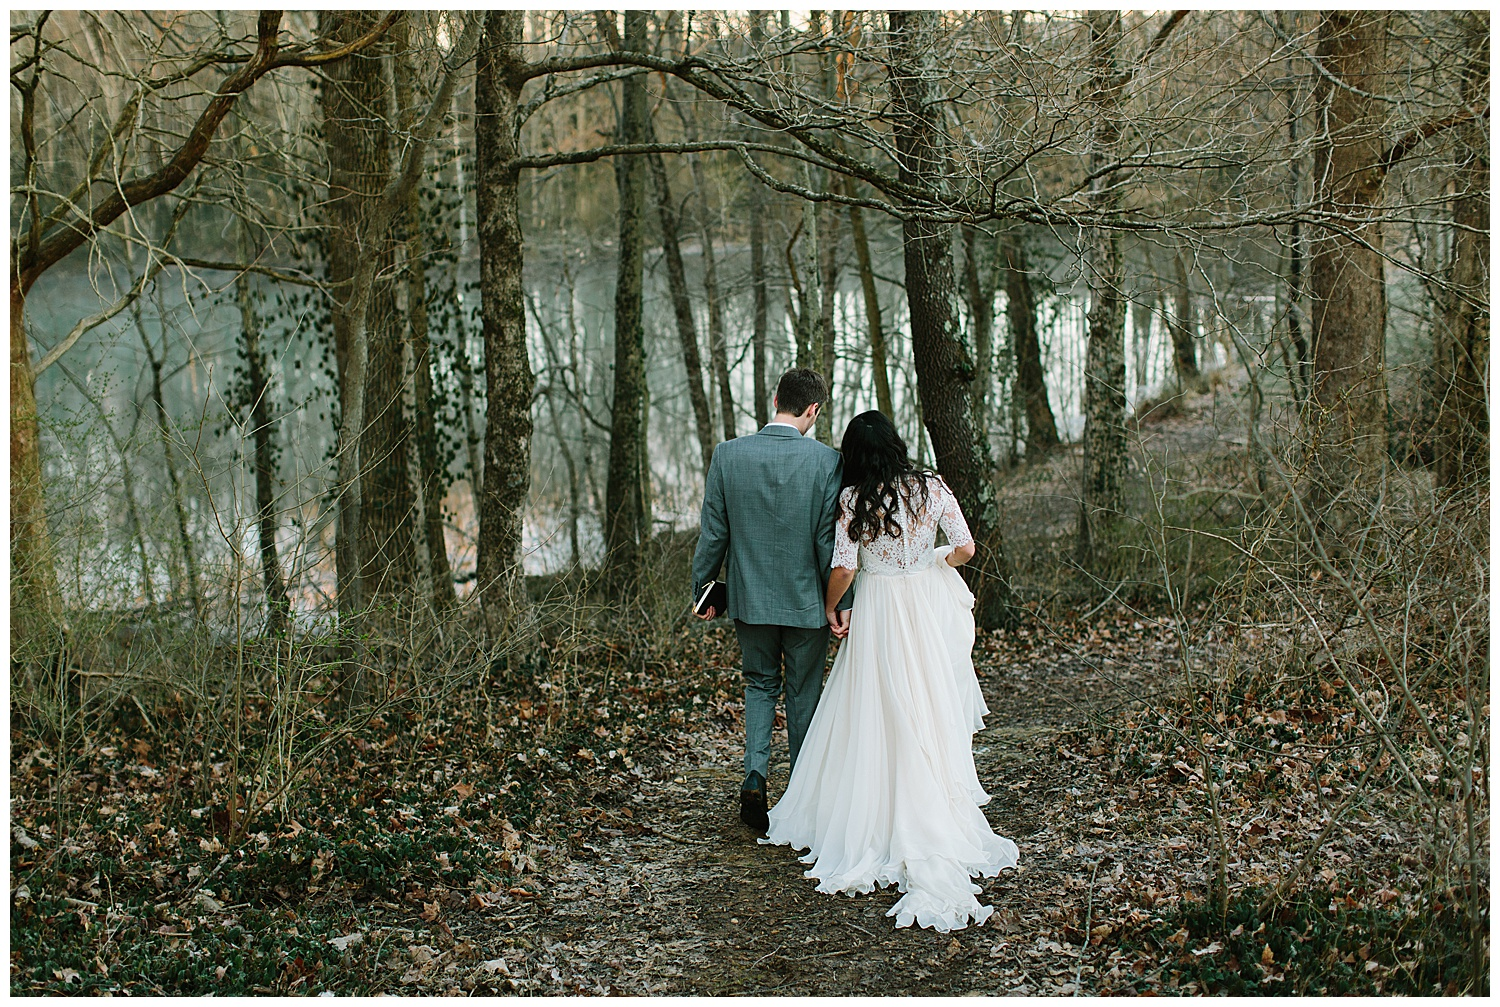 trent.and.kendra.photography.foxhollow.farm.elopement-32.jpg